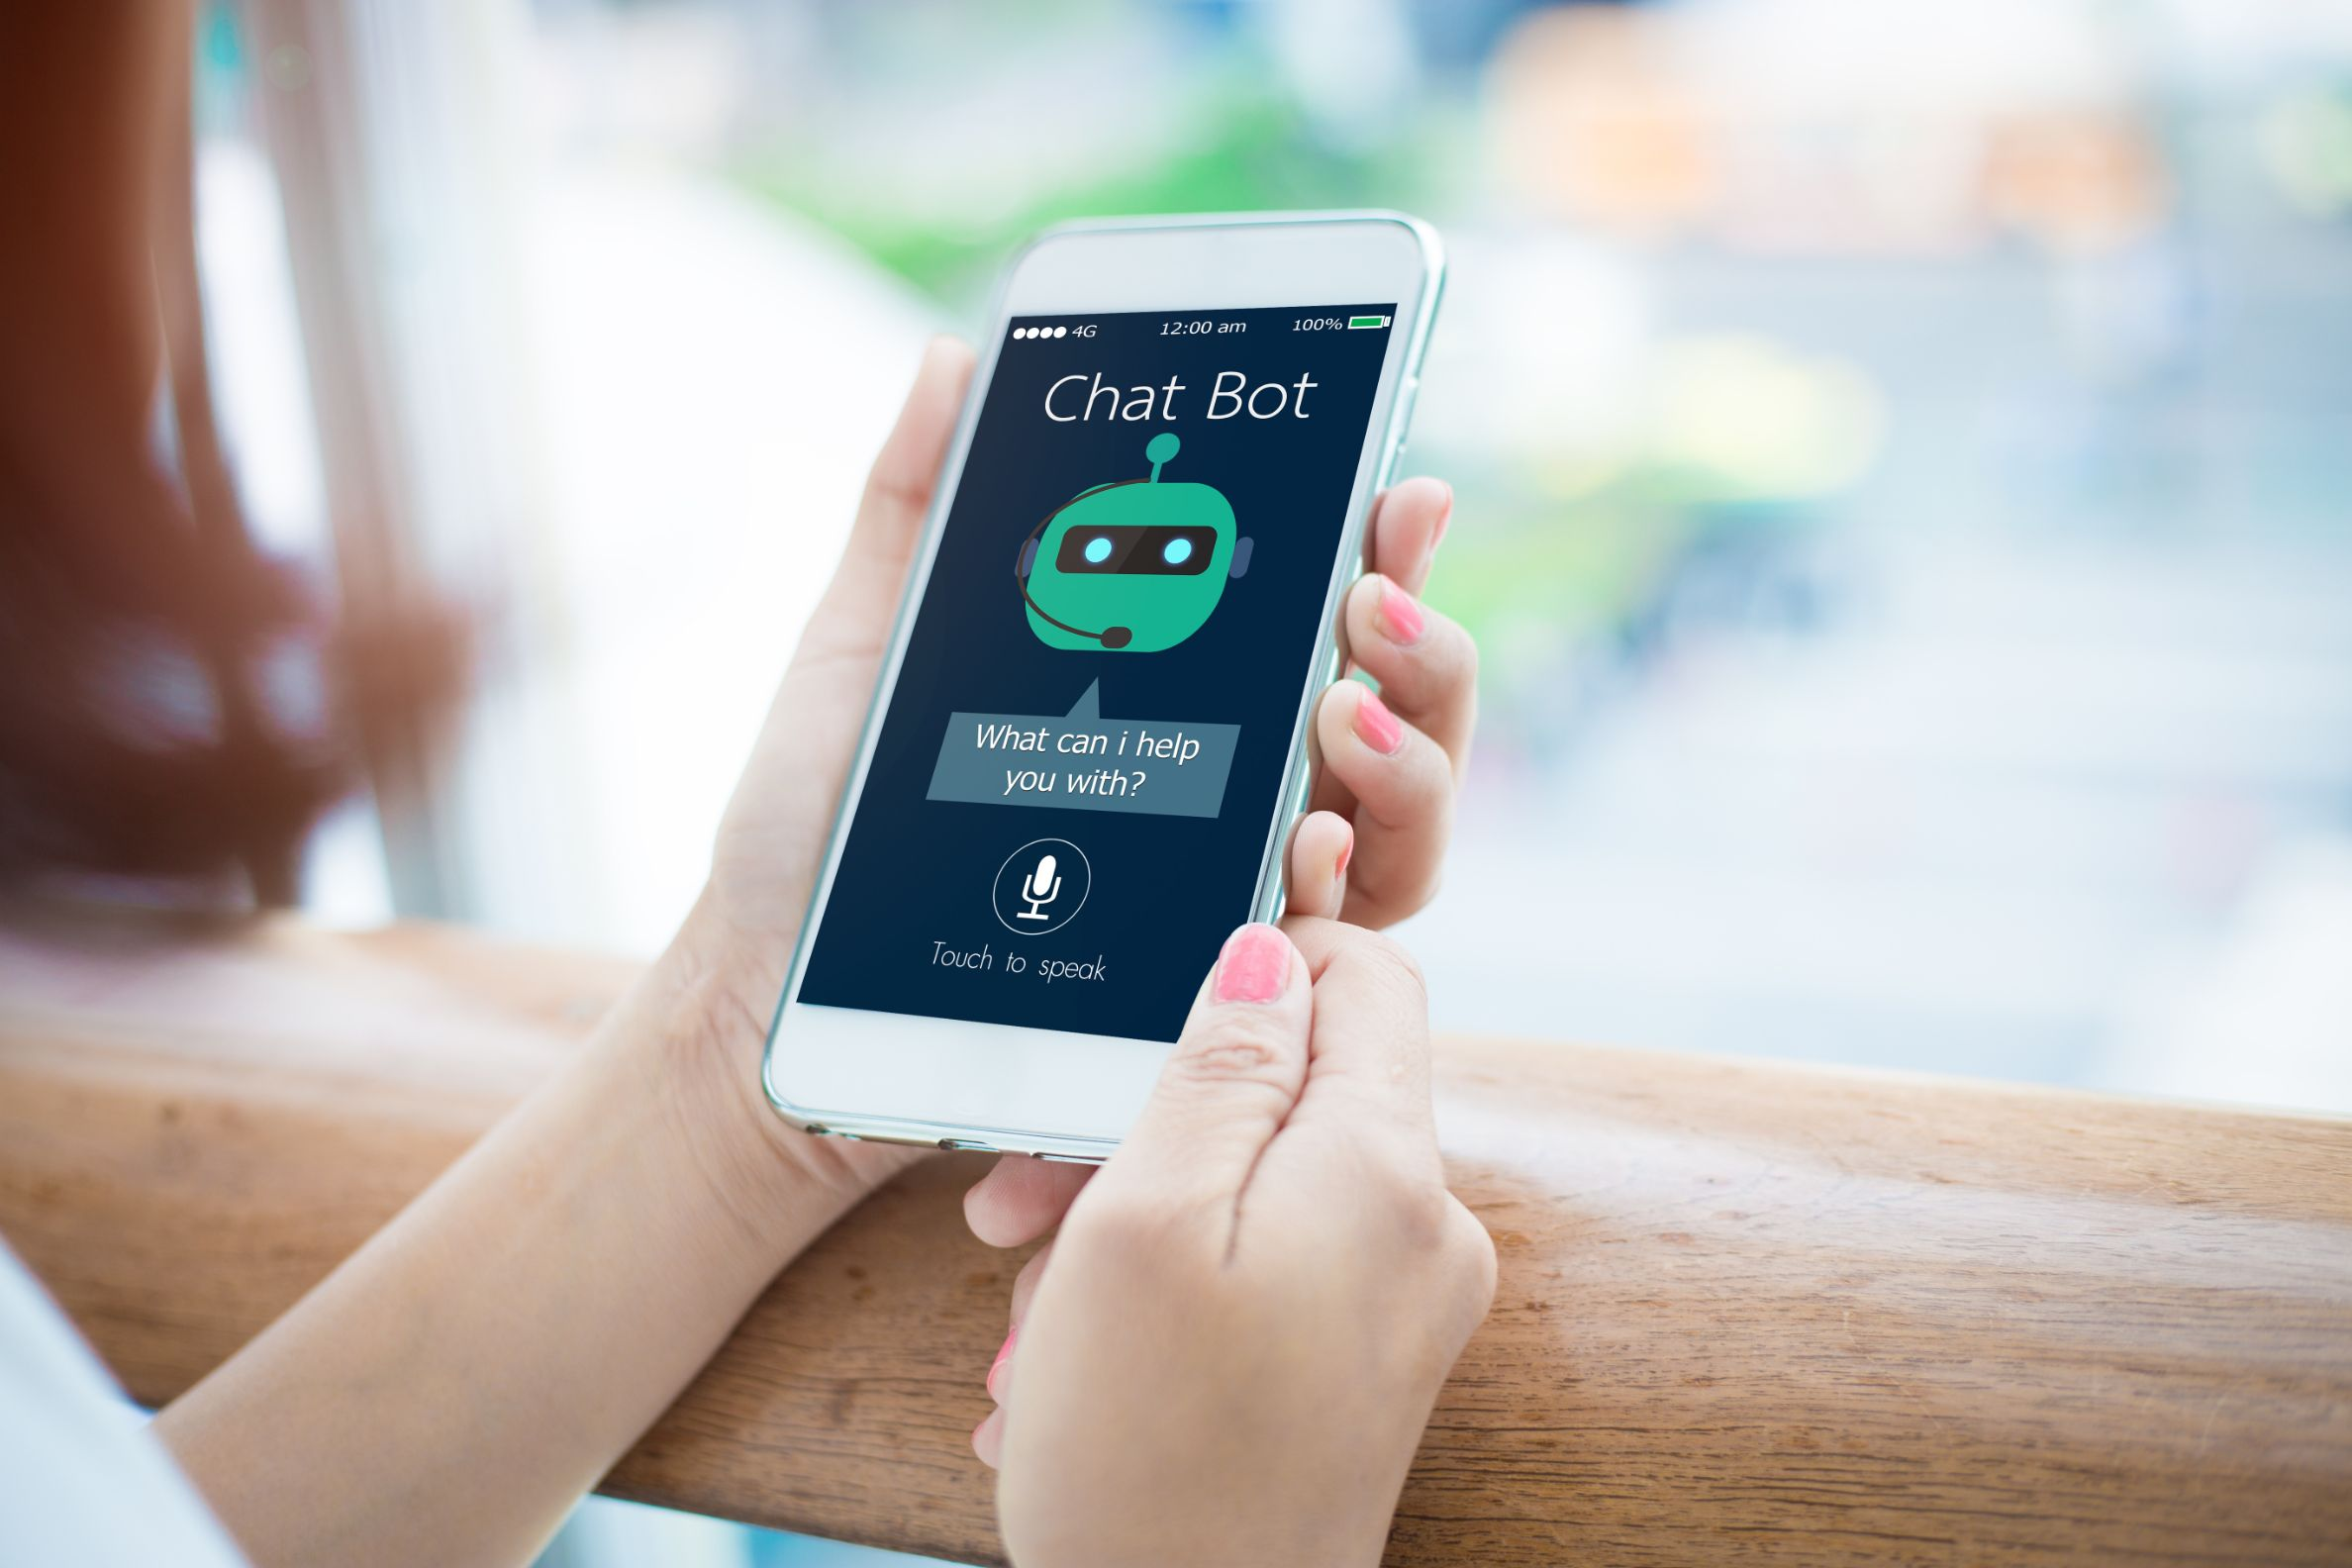 Live chat or chatbots